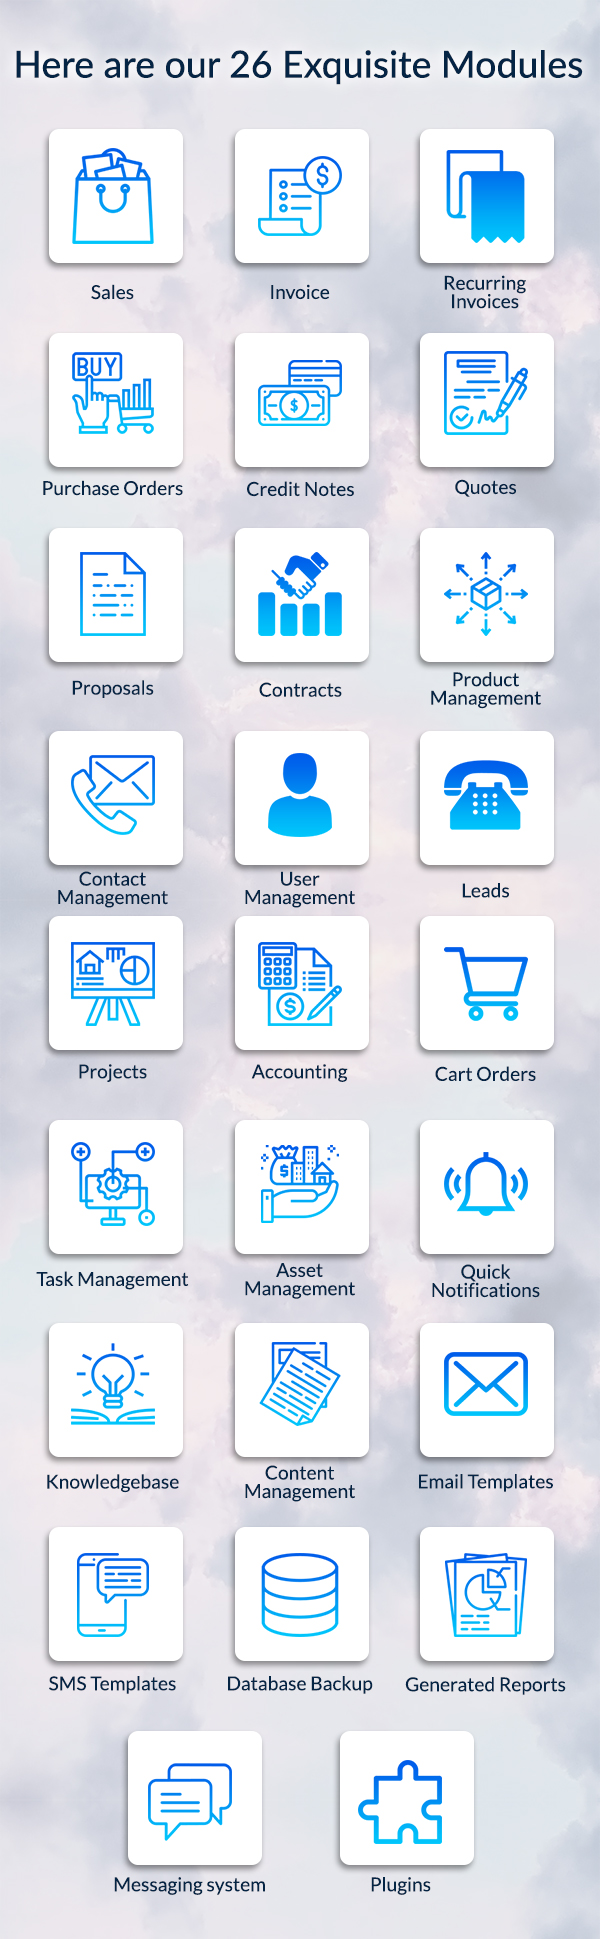 , LaraOffice Ultimate CRM and Project Management System, Laravel & VueJs